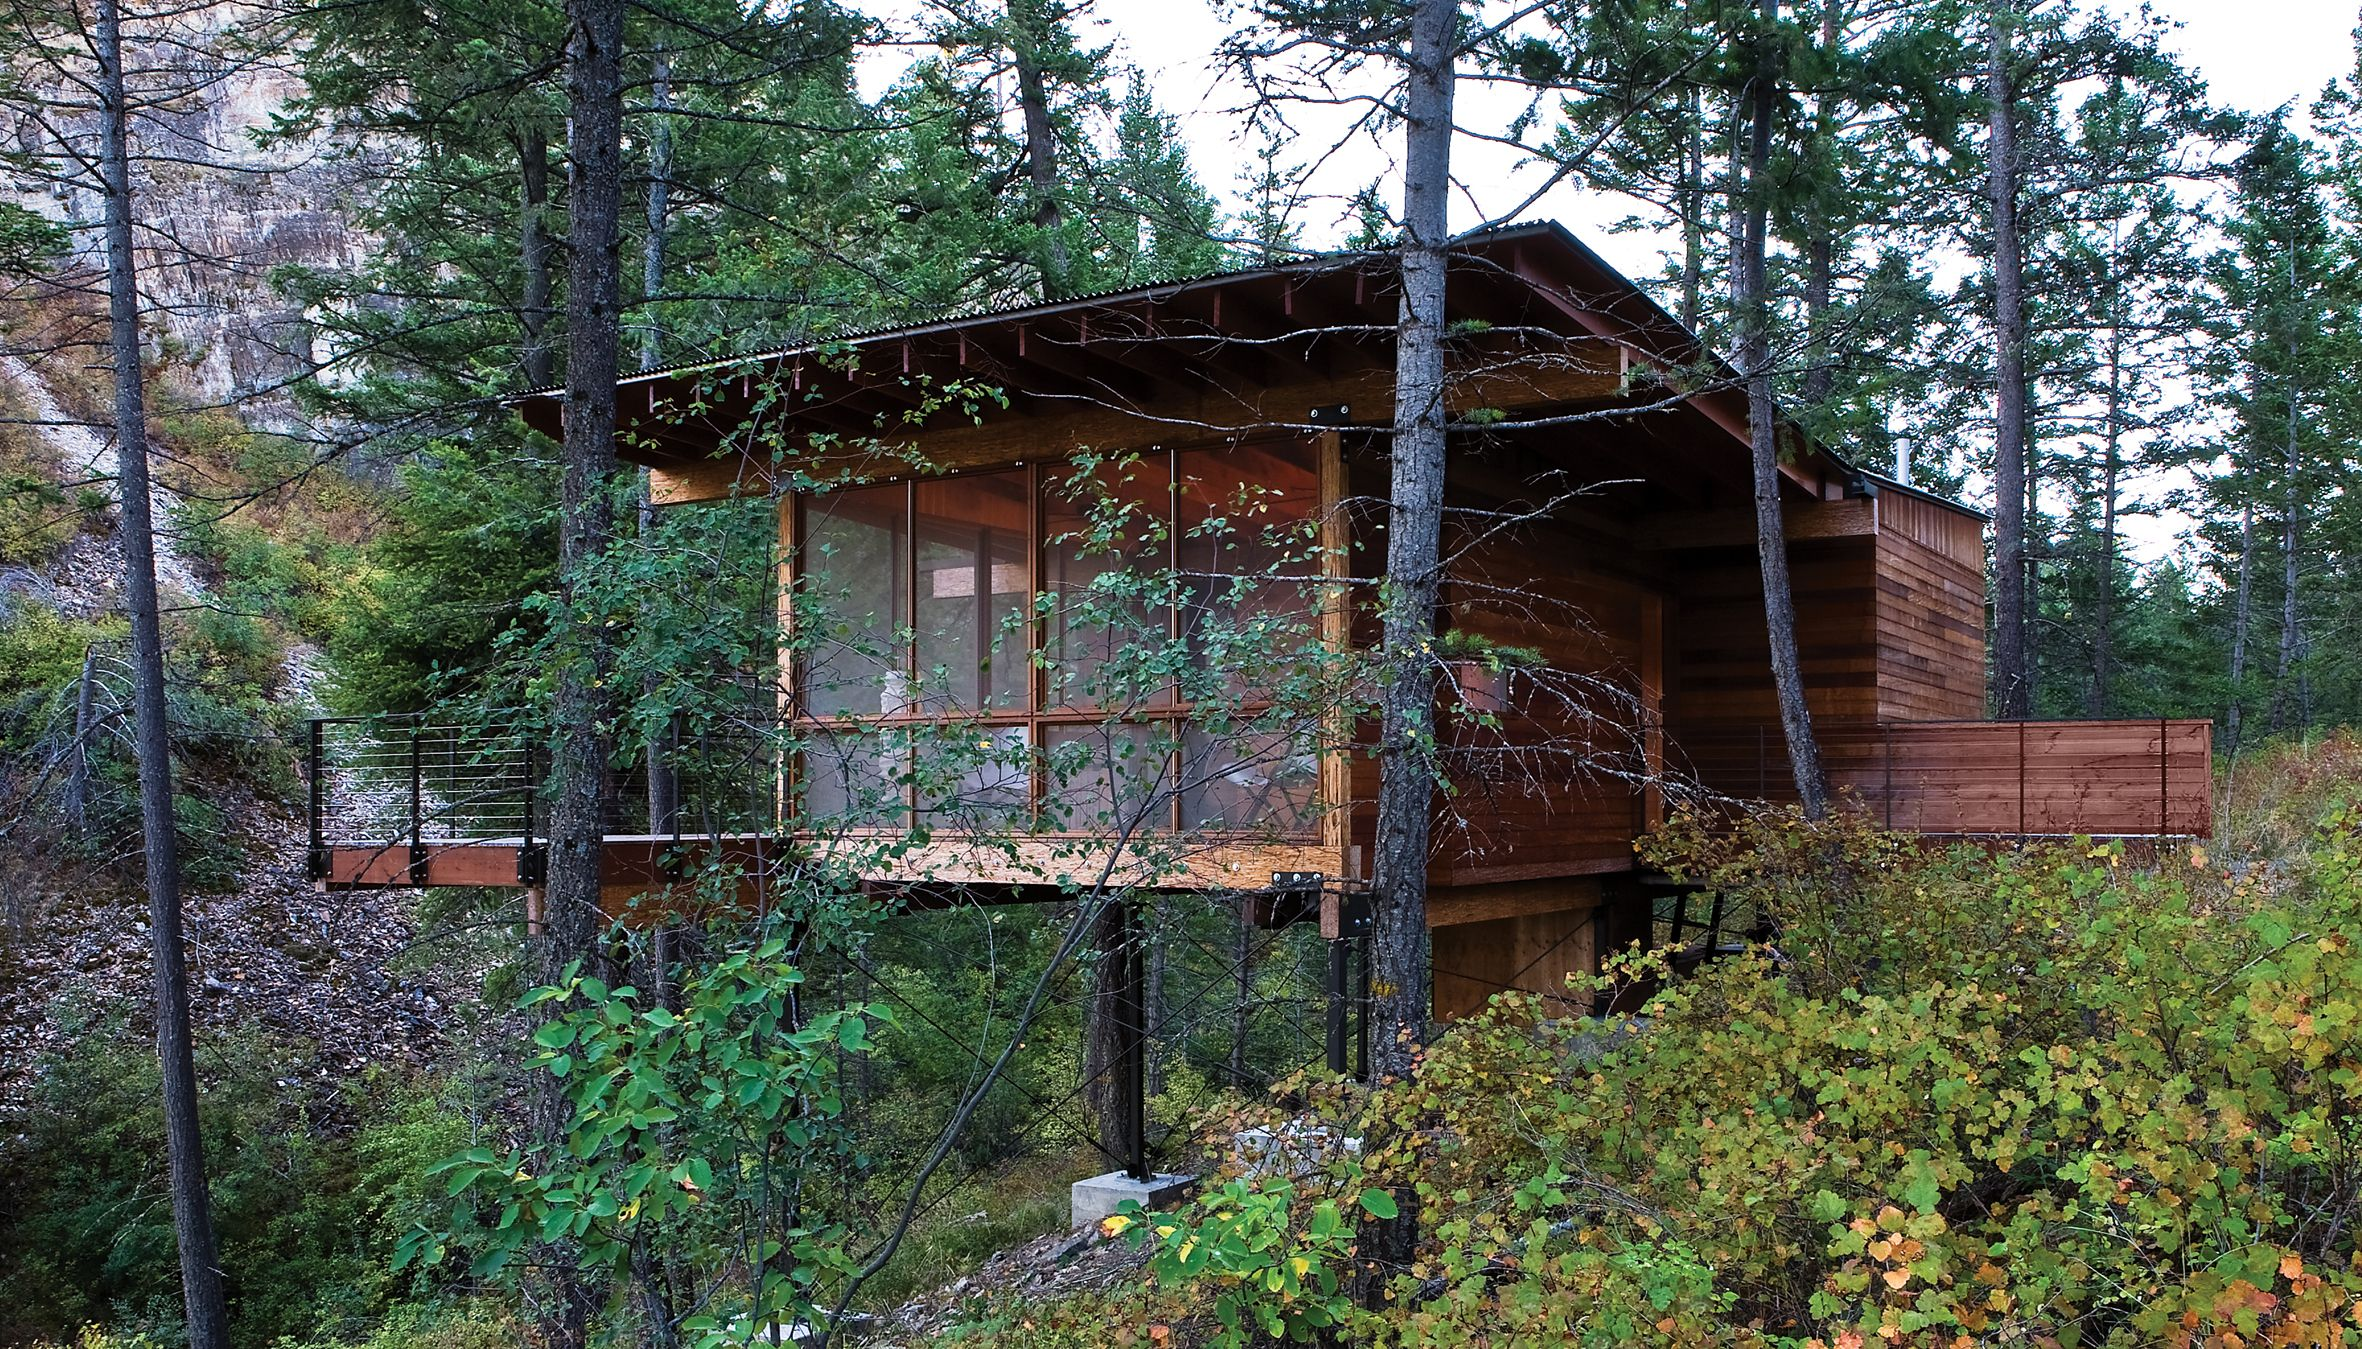 Wood Cabin By Andersson Wise Architects, Polson, Montana, USA